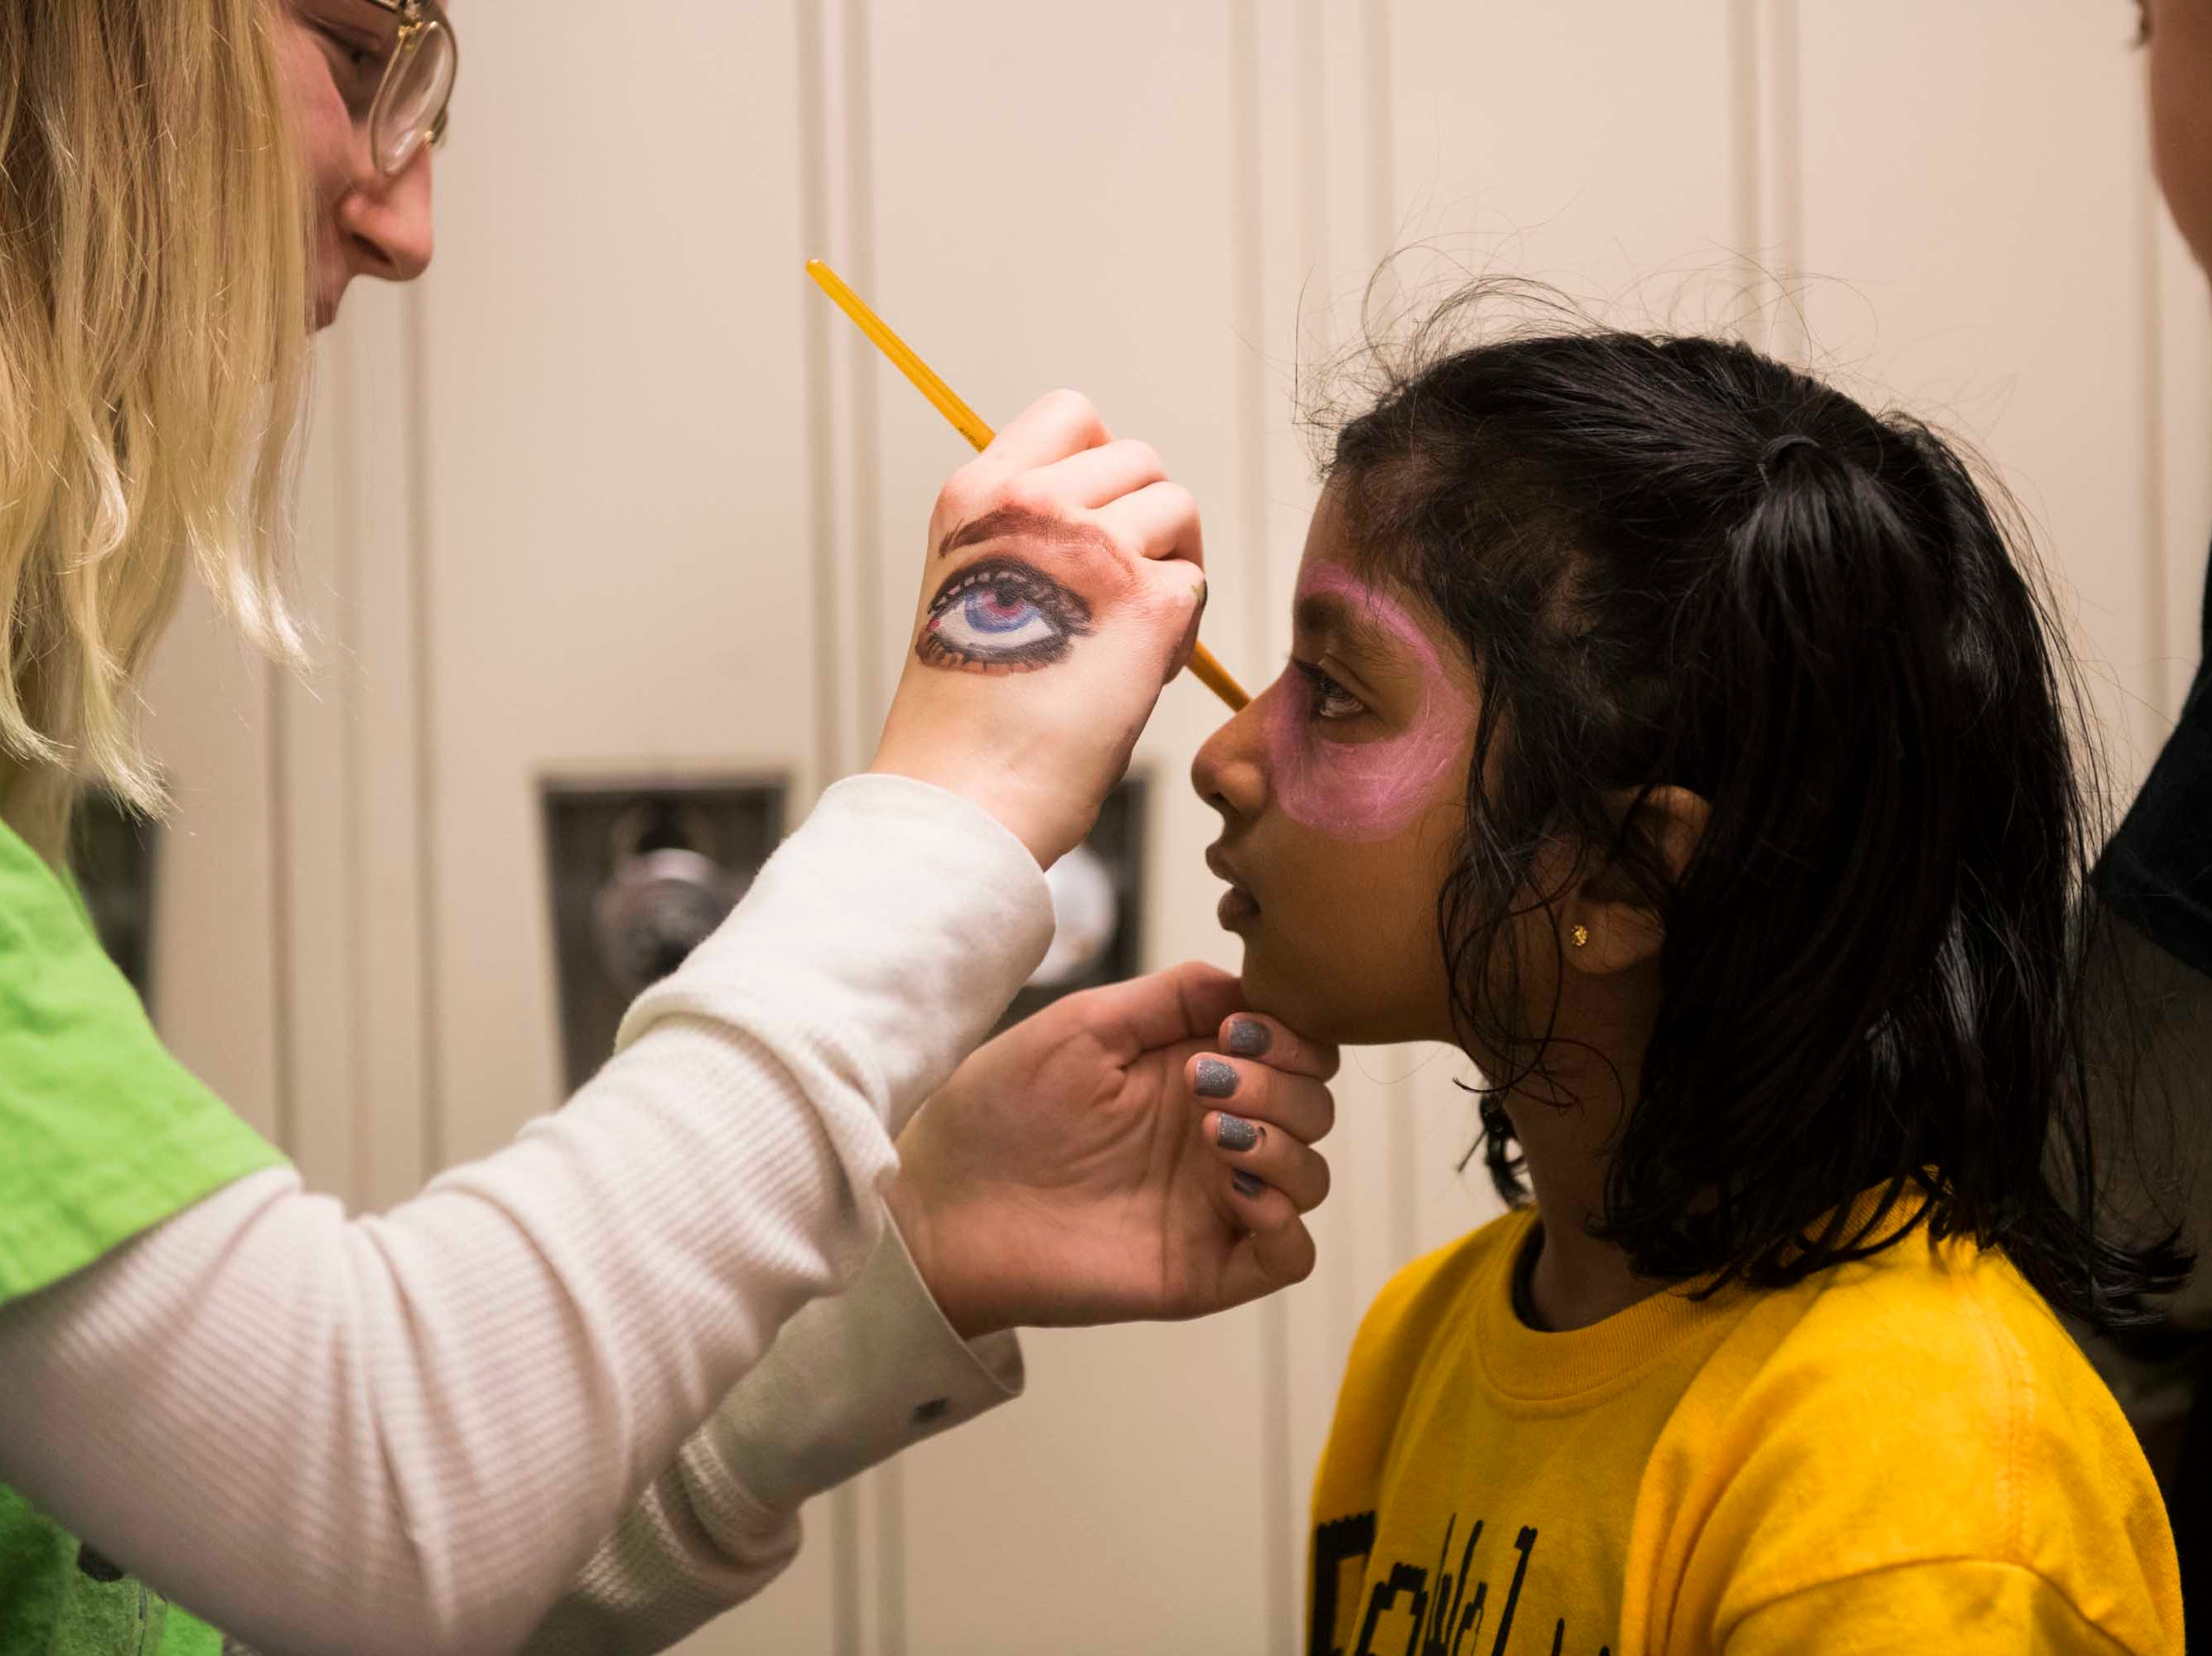 Keerthana C. 6, of Troy, a member of the Robowolves robotics team, gets her face painted by Bridgette Holtan, of Sterling Heights.